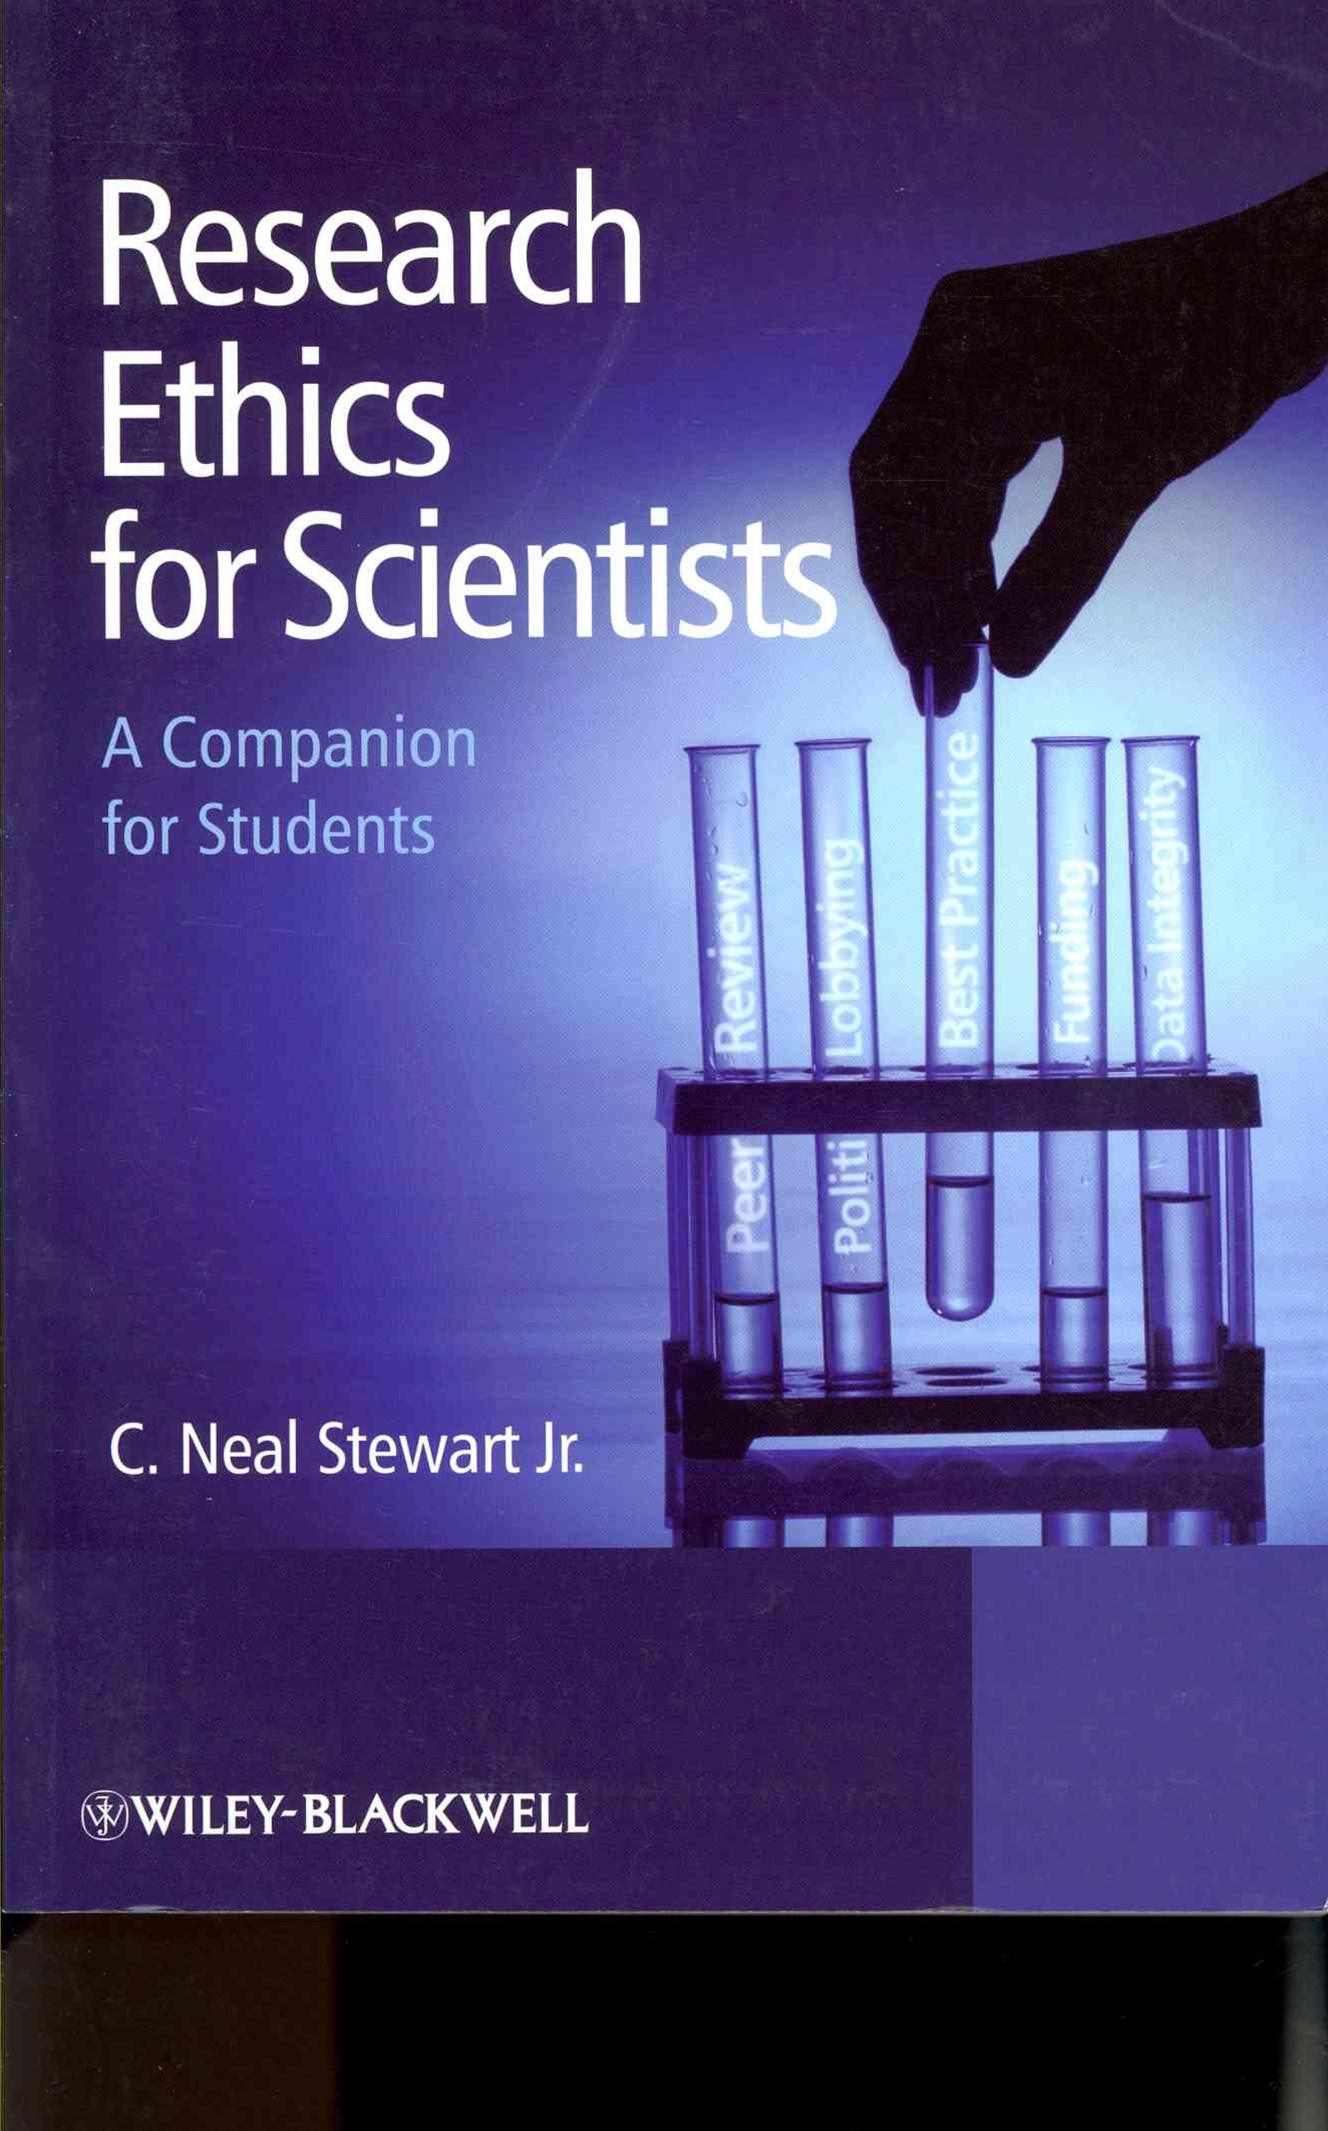 Research Ethics for Scientists - a Companion for  Students